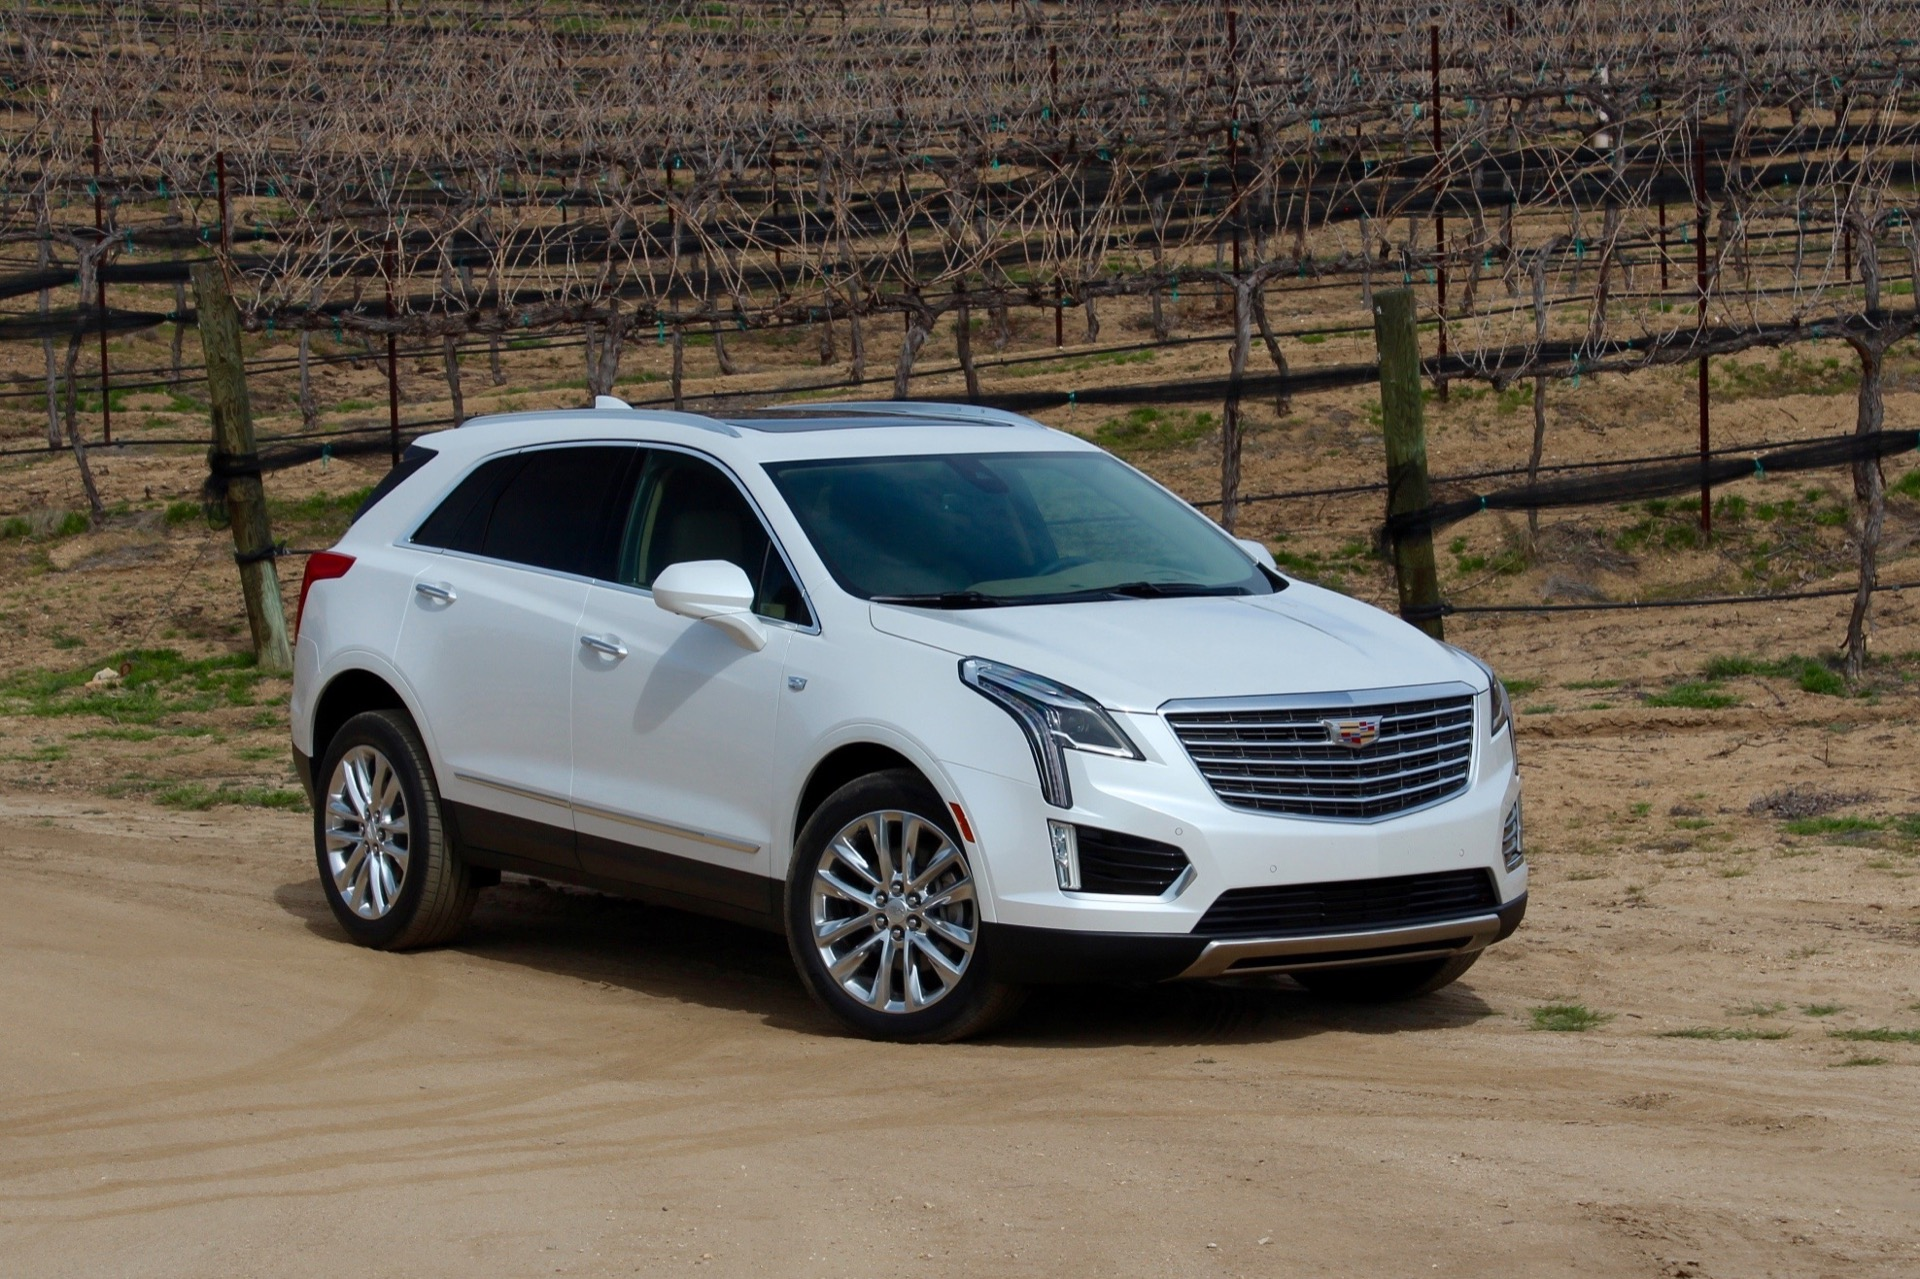 Cadillac Xt5 To Get 4 Cylinder Engine